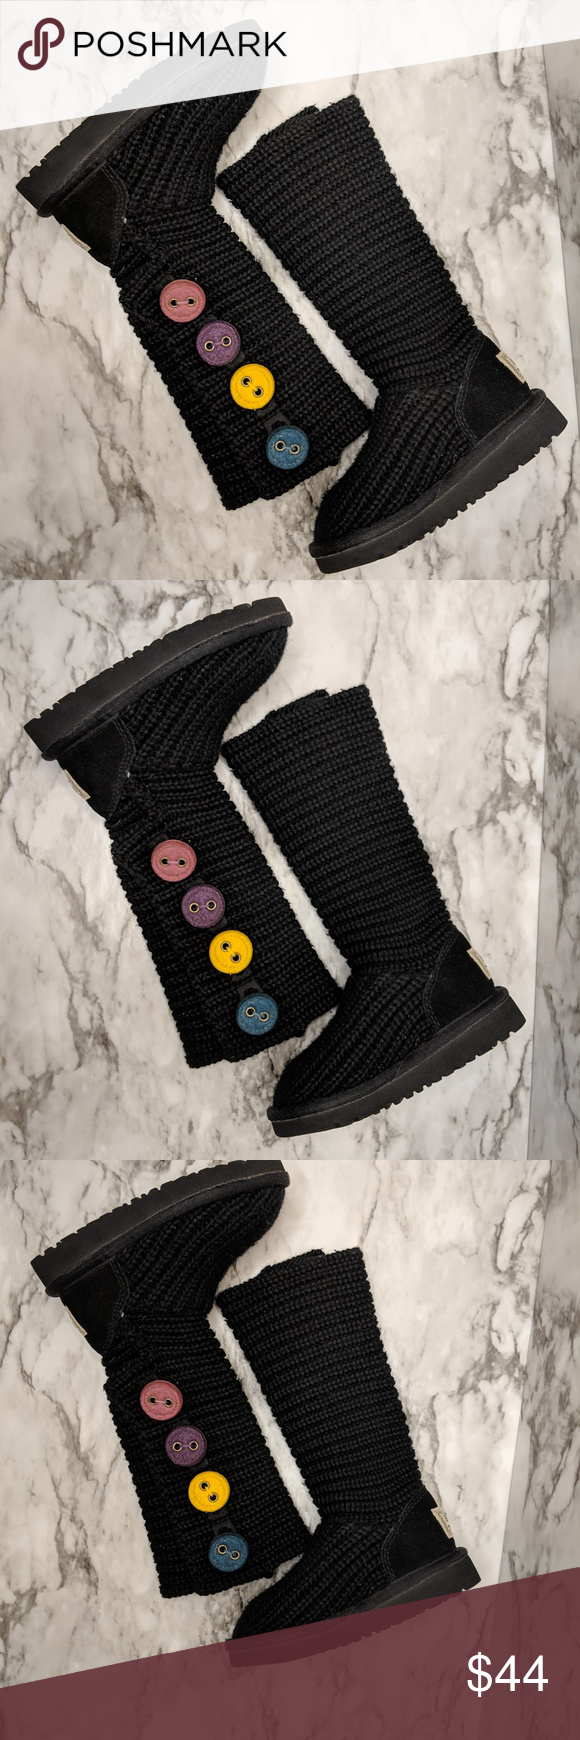 Ugg Boots Kid Cardy Classic Knit Sweater Rainbow Ugg Boots Kid - H17 Sz 8 Little Girl Black Cardy Classic Knit Sweater 4 Button Rainbow good condiiton UGG Shoes Boots #uggbootsoutfitblackgirl